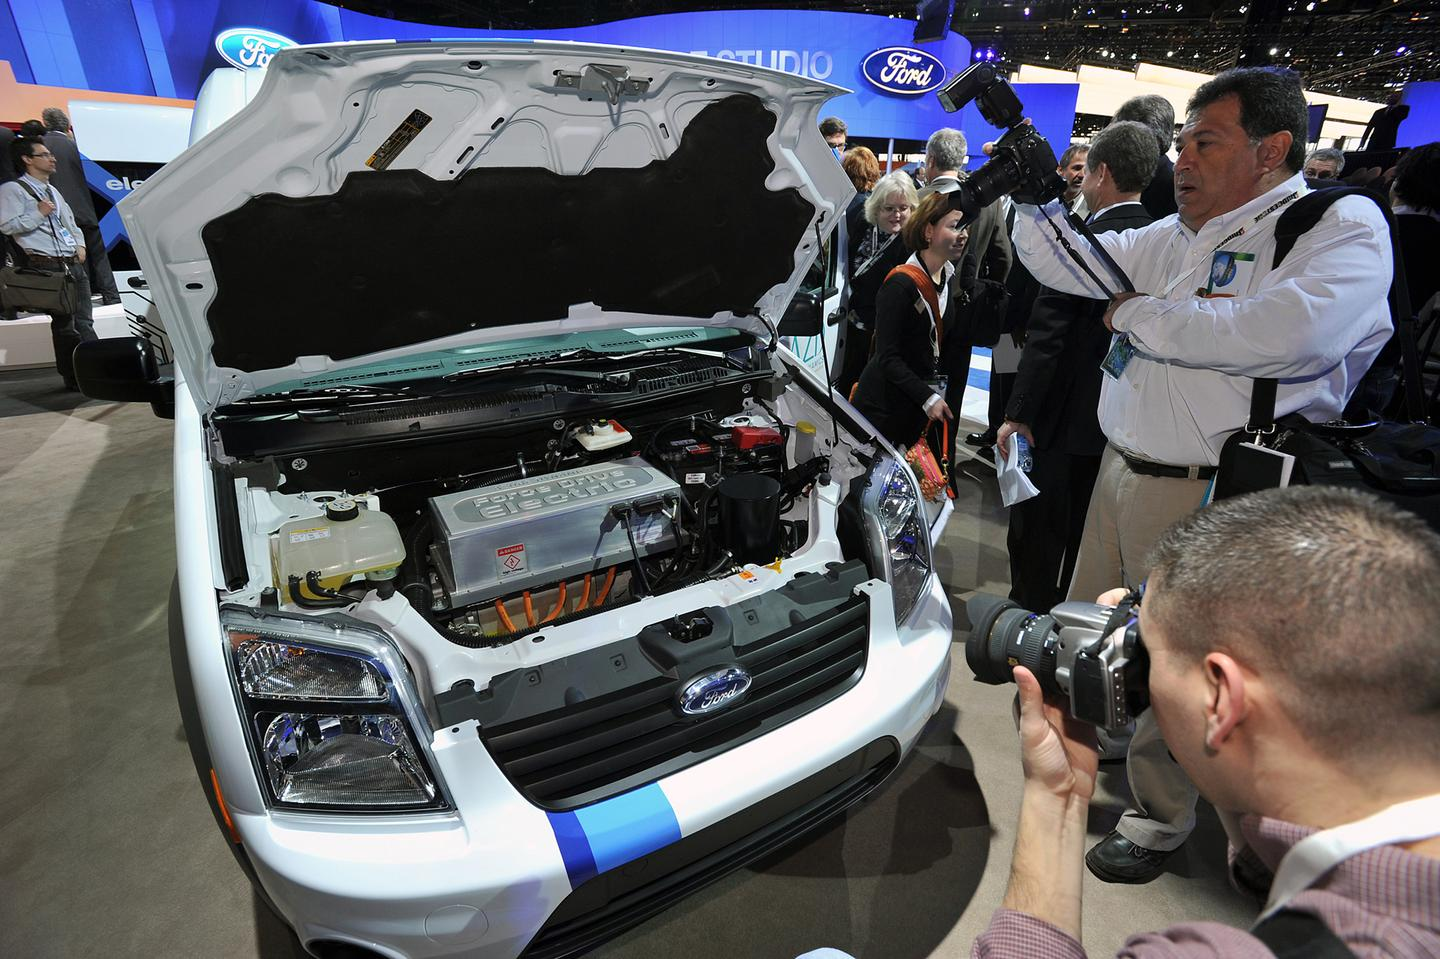 Under the hood of the Transit Connect Electric van